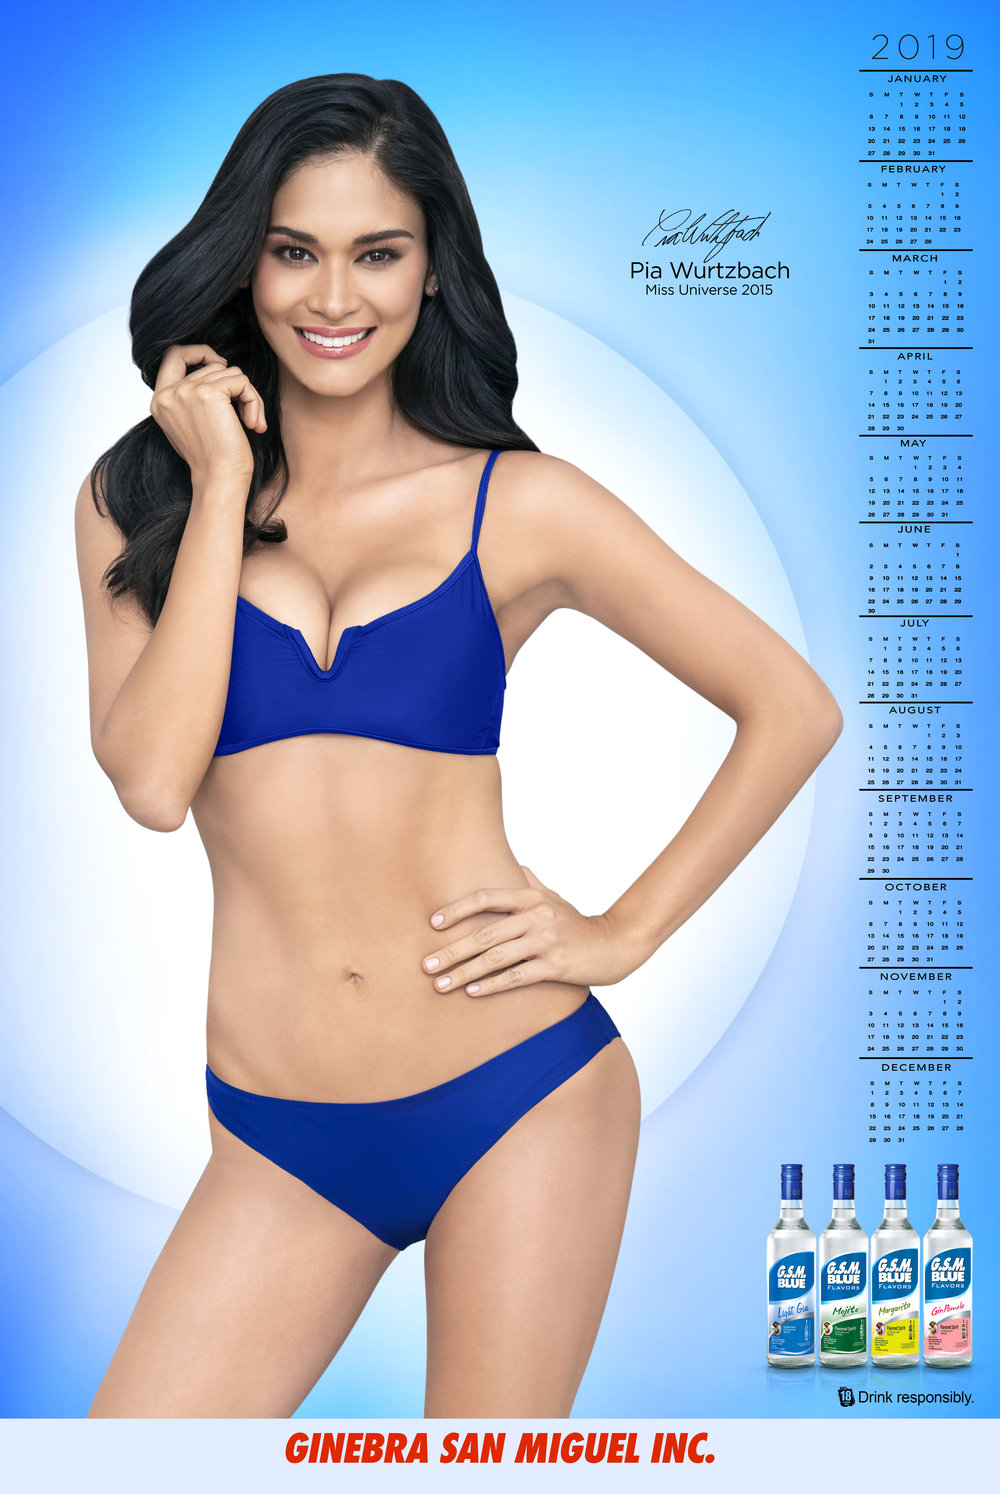 Pia in the GSM Blue calendar layout